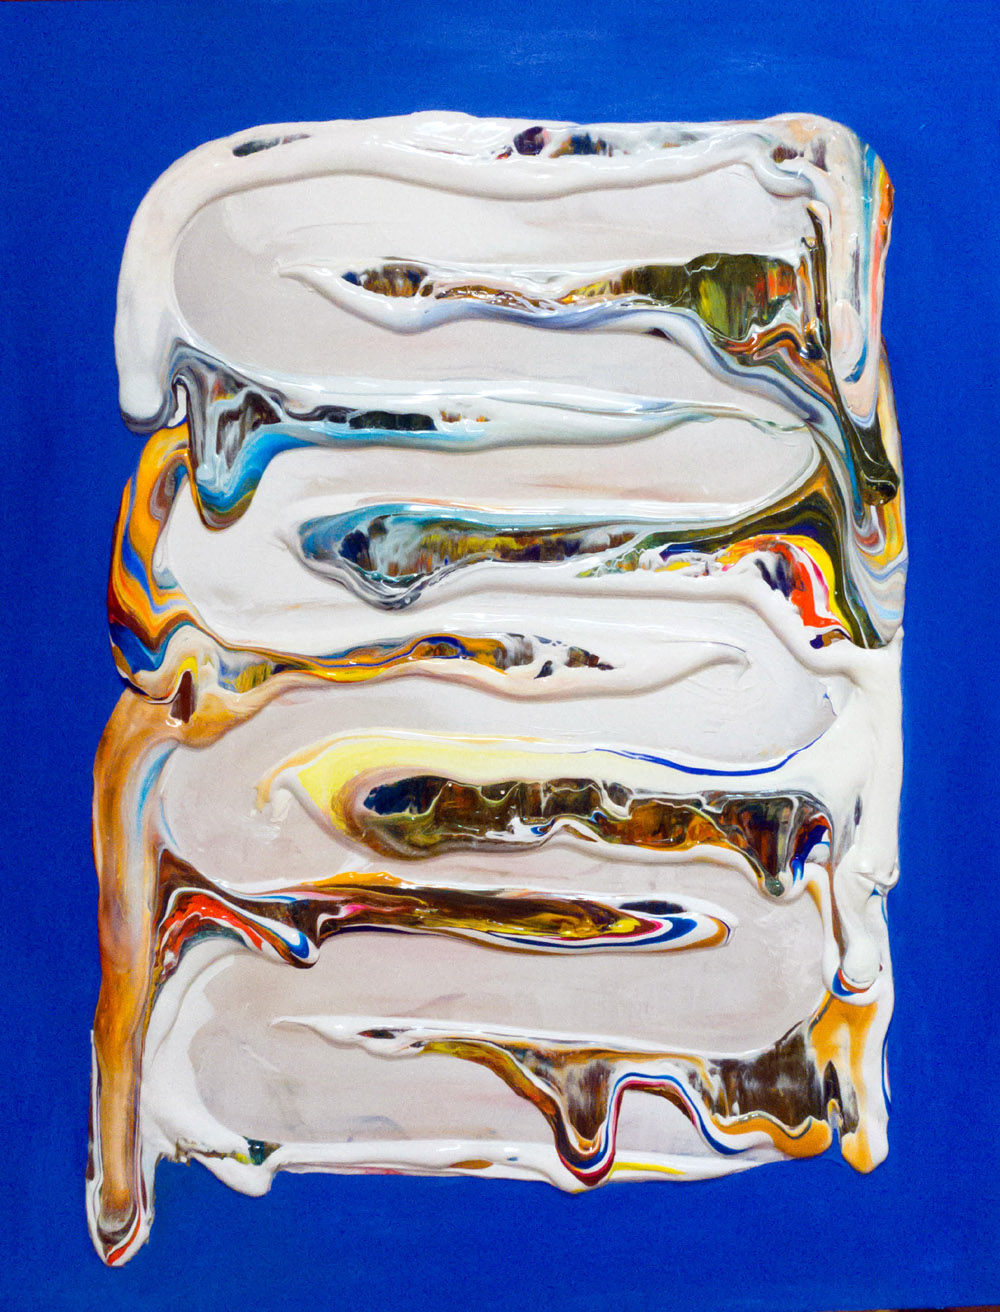 Untitled (on blue) by Derick Smith